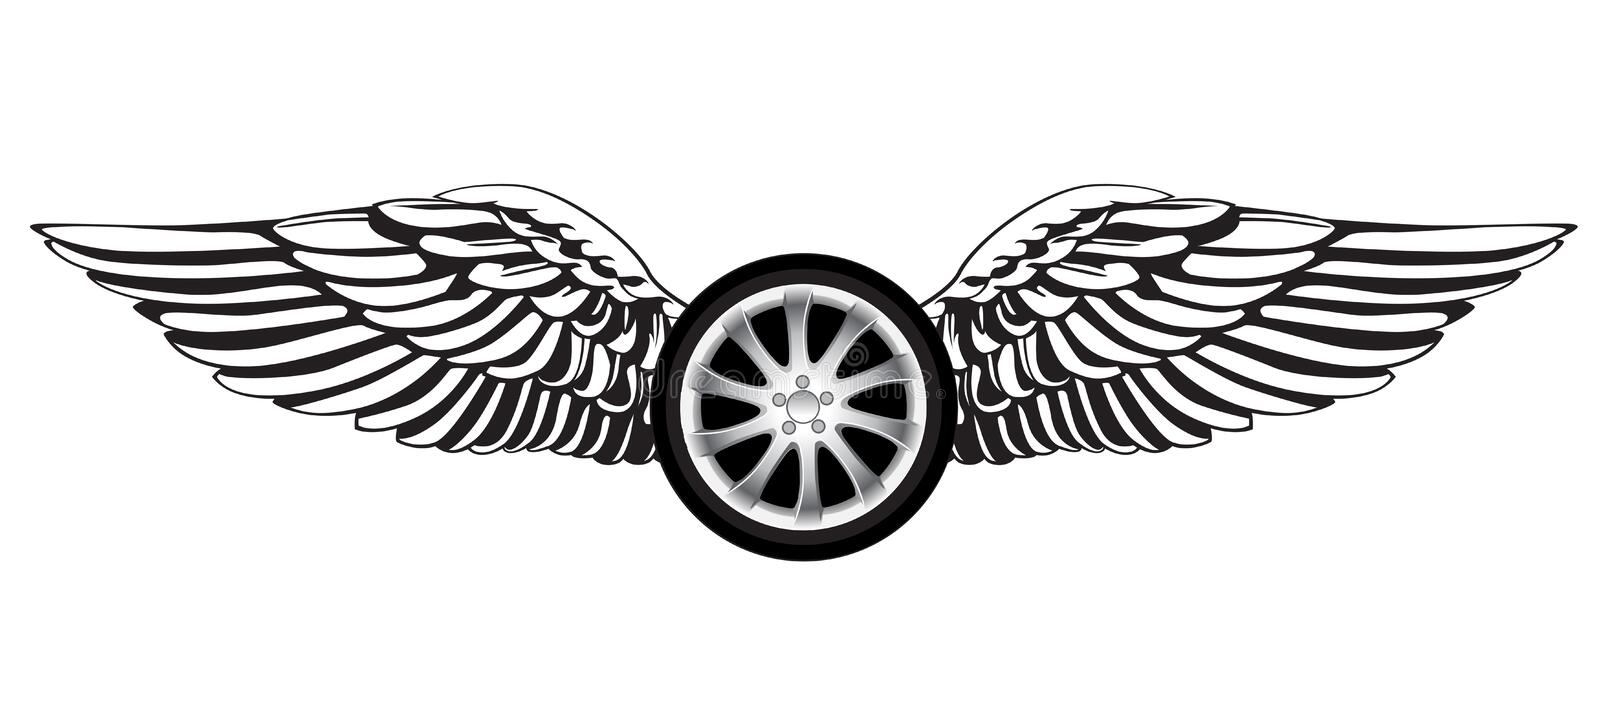 Racing symbol. Wheel with angel wings as a racing symbol or emblem vector illustration